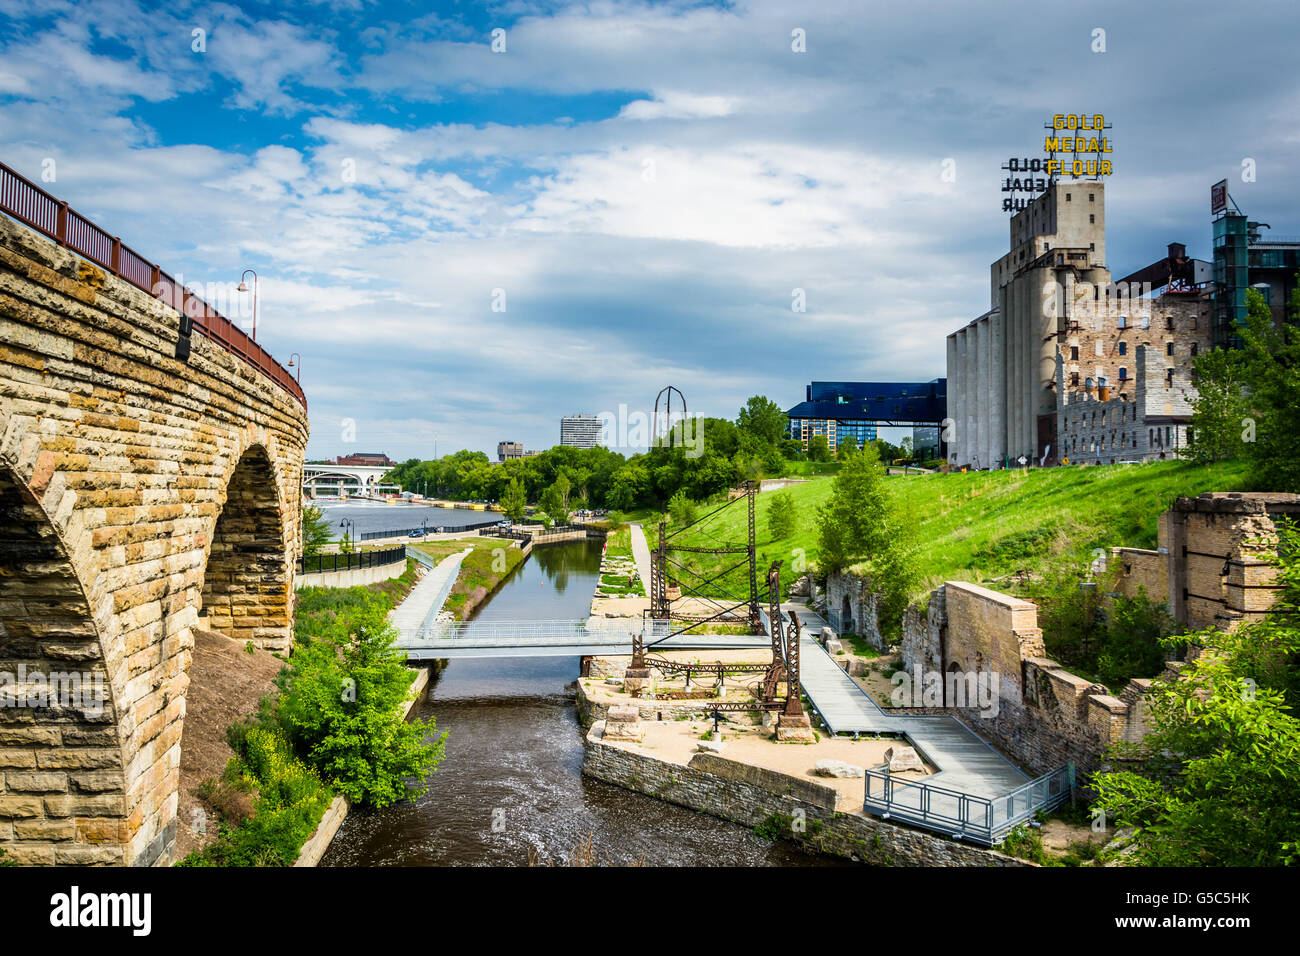 Ruins at Mill Ruins Park and the Stone Arch Bridge, in downtown Minneapolis, Minnesota. - Stock Image